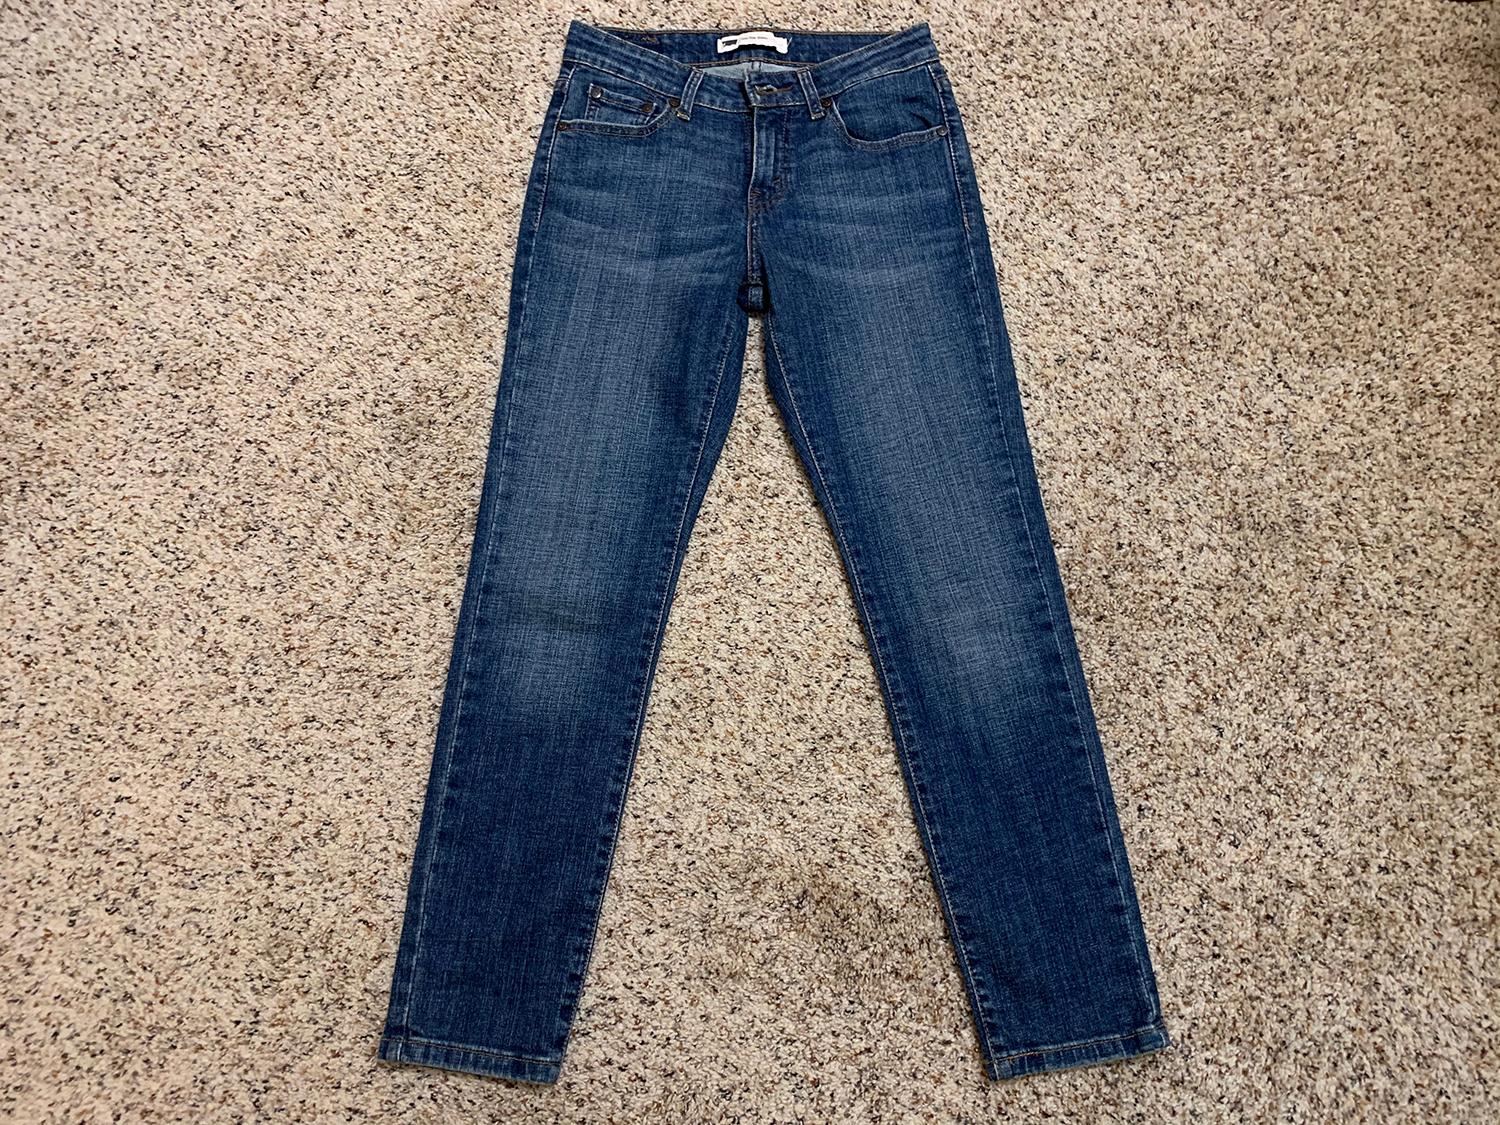 Levis Womens Mid Rise Skinny Blue Jeans Size 4M